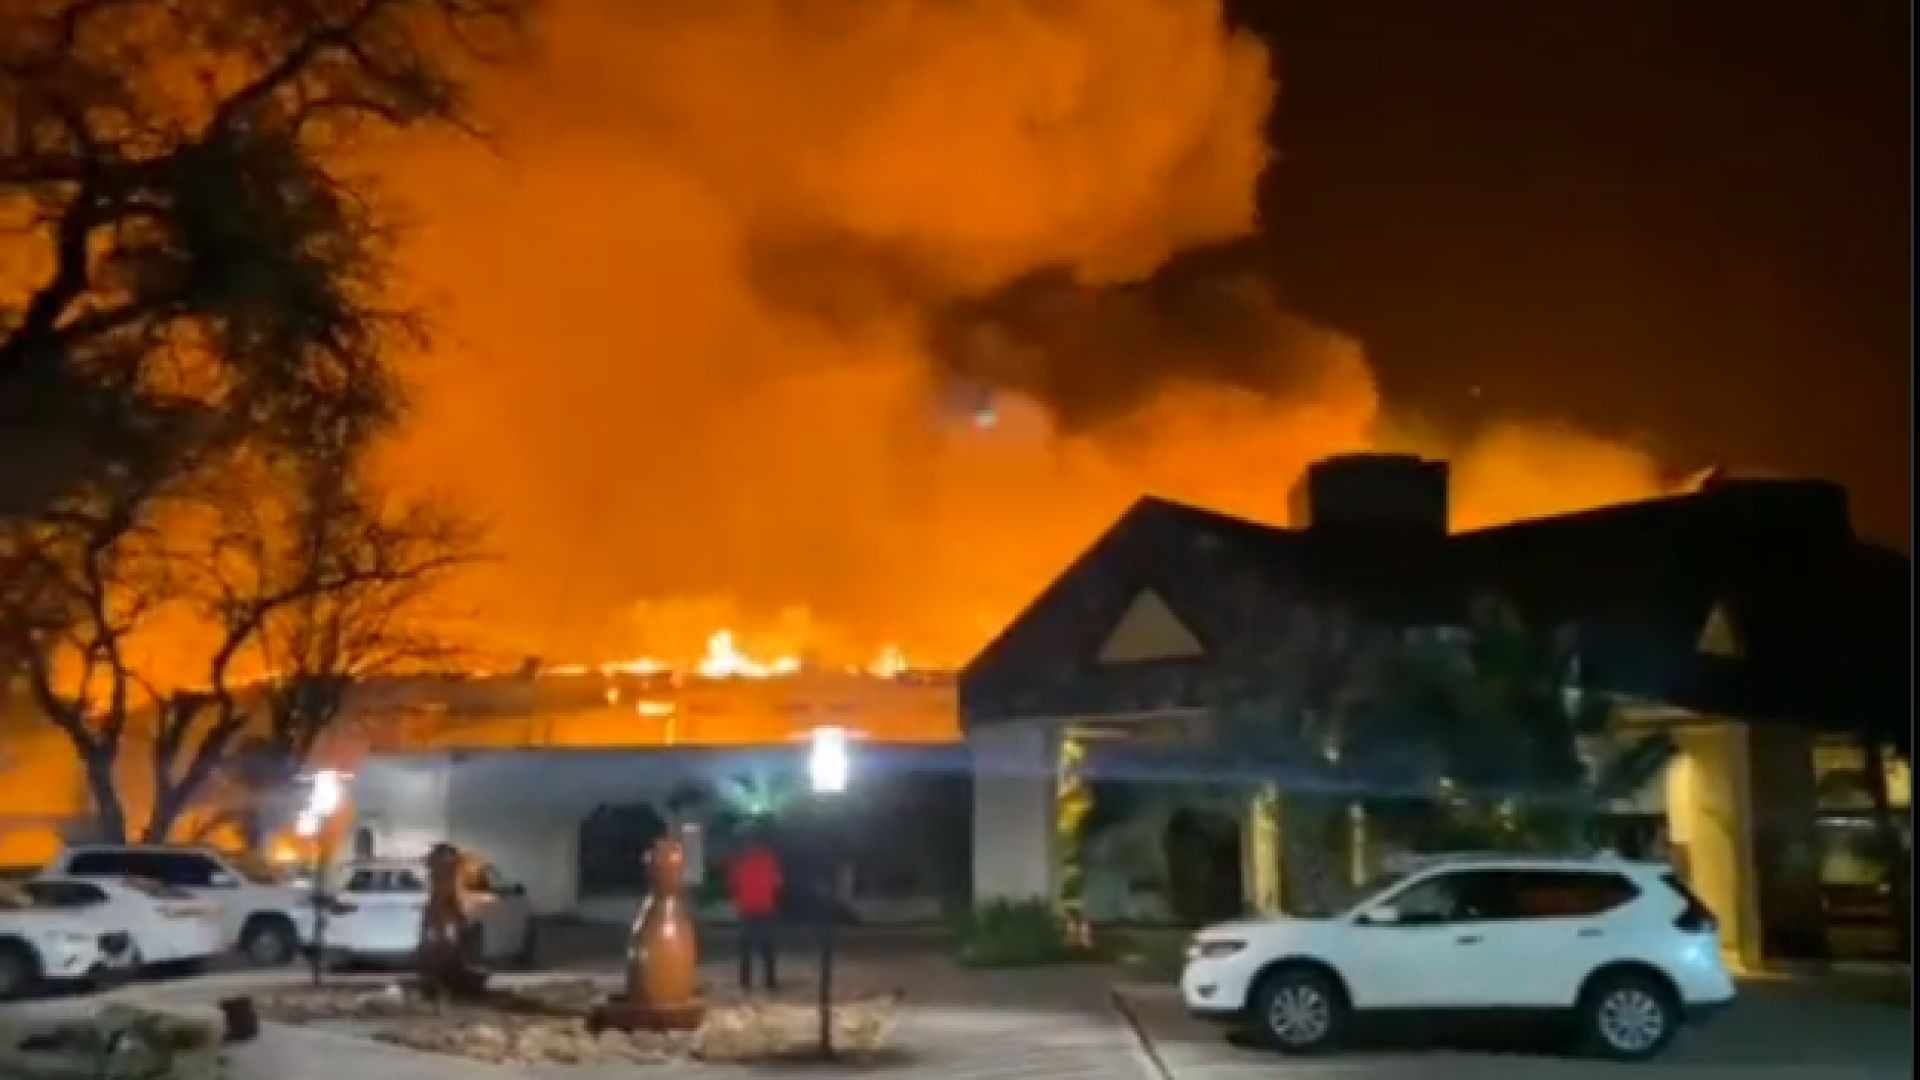 Mmabatho Palms Hotel in Mahikeng catches fire